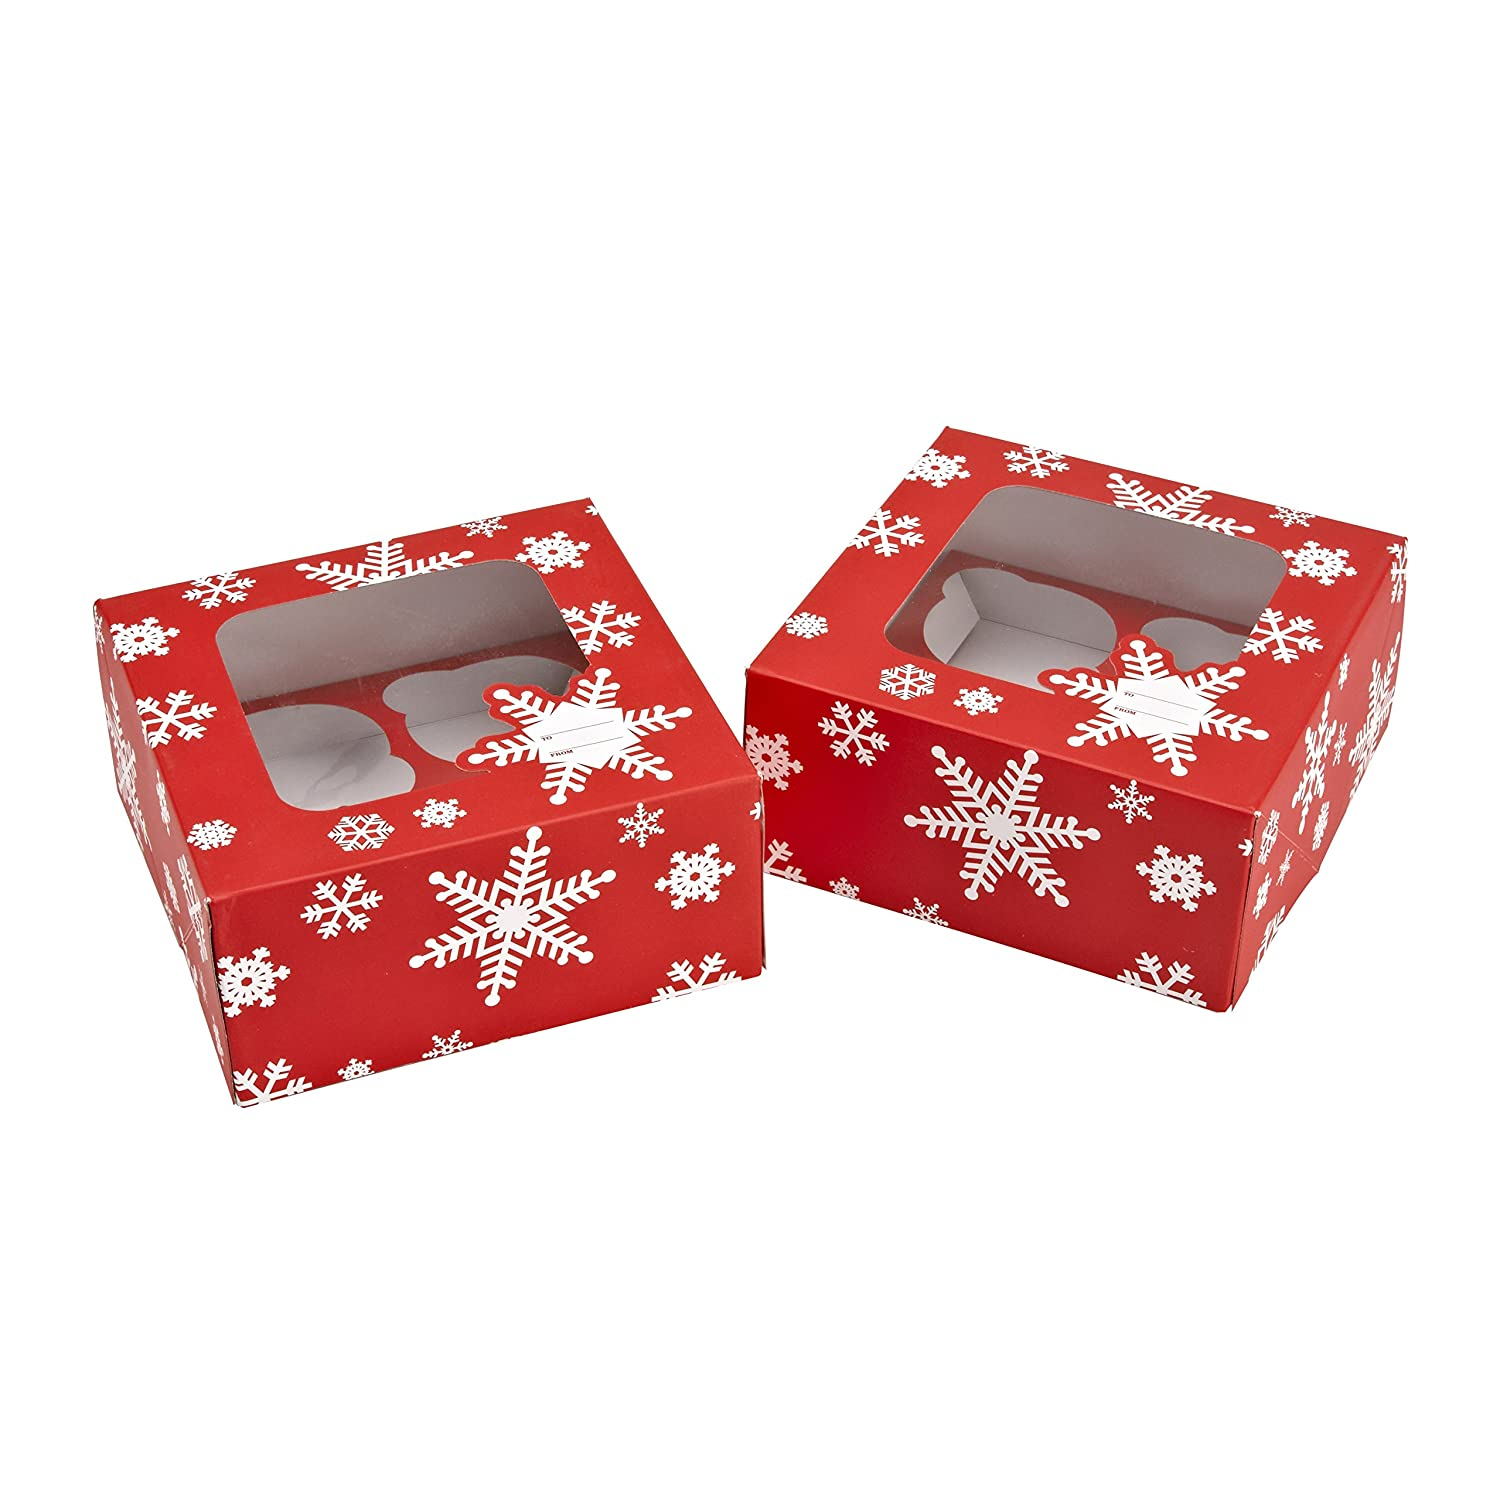 Sweet Creations Candy Cane Stripe Cupcake Boxes, Pack of 2